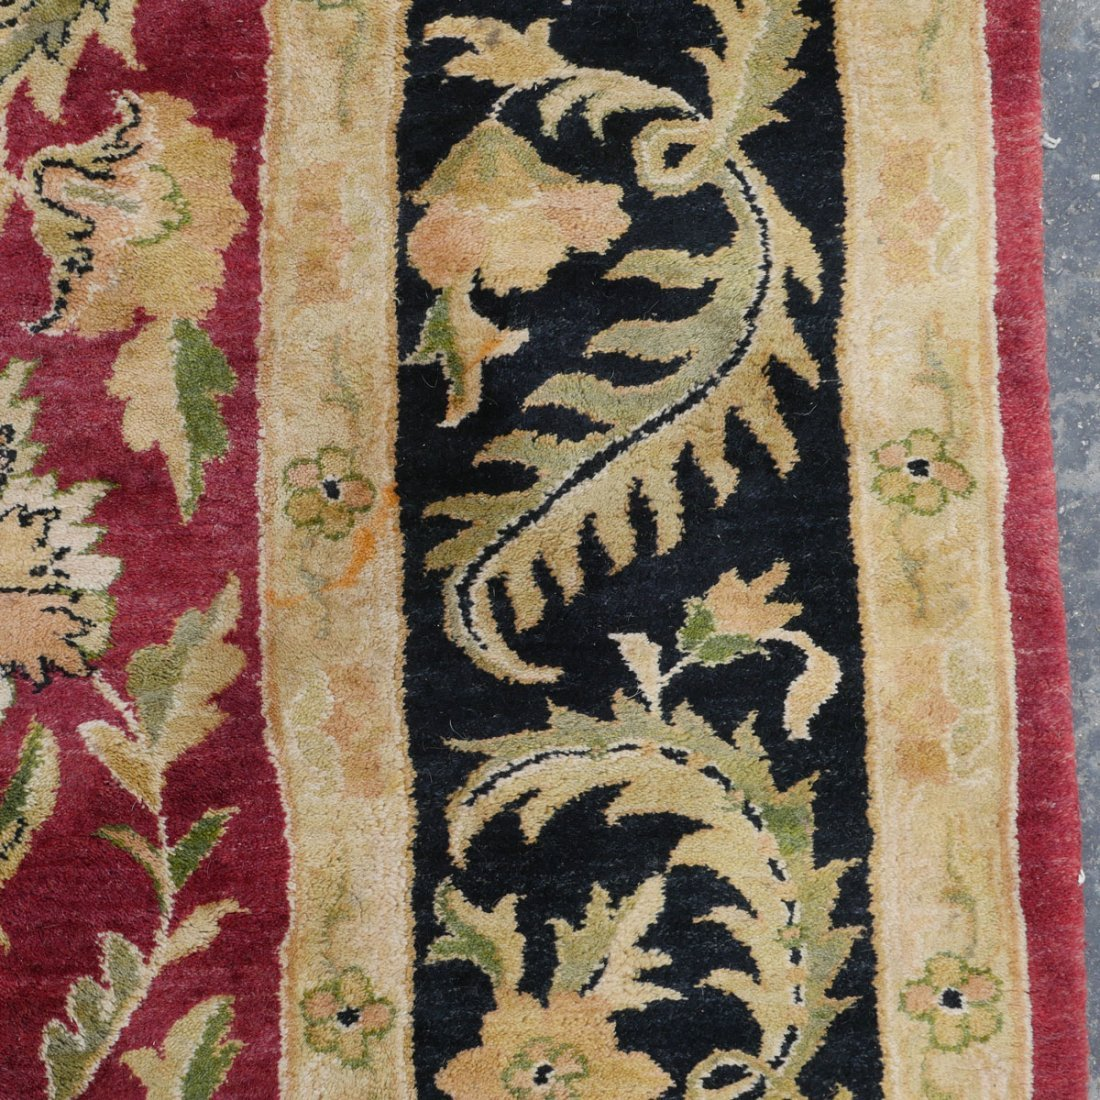 "INDO-TURKISH HK WOOL RUG, 9'1"" X 11'6"" - 5"